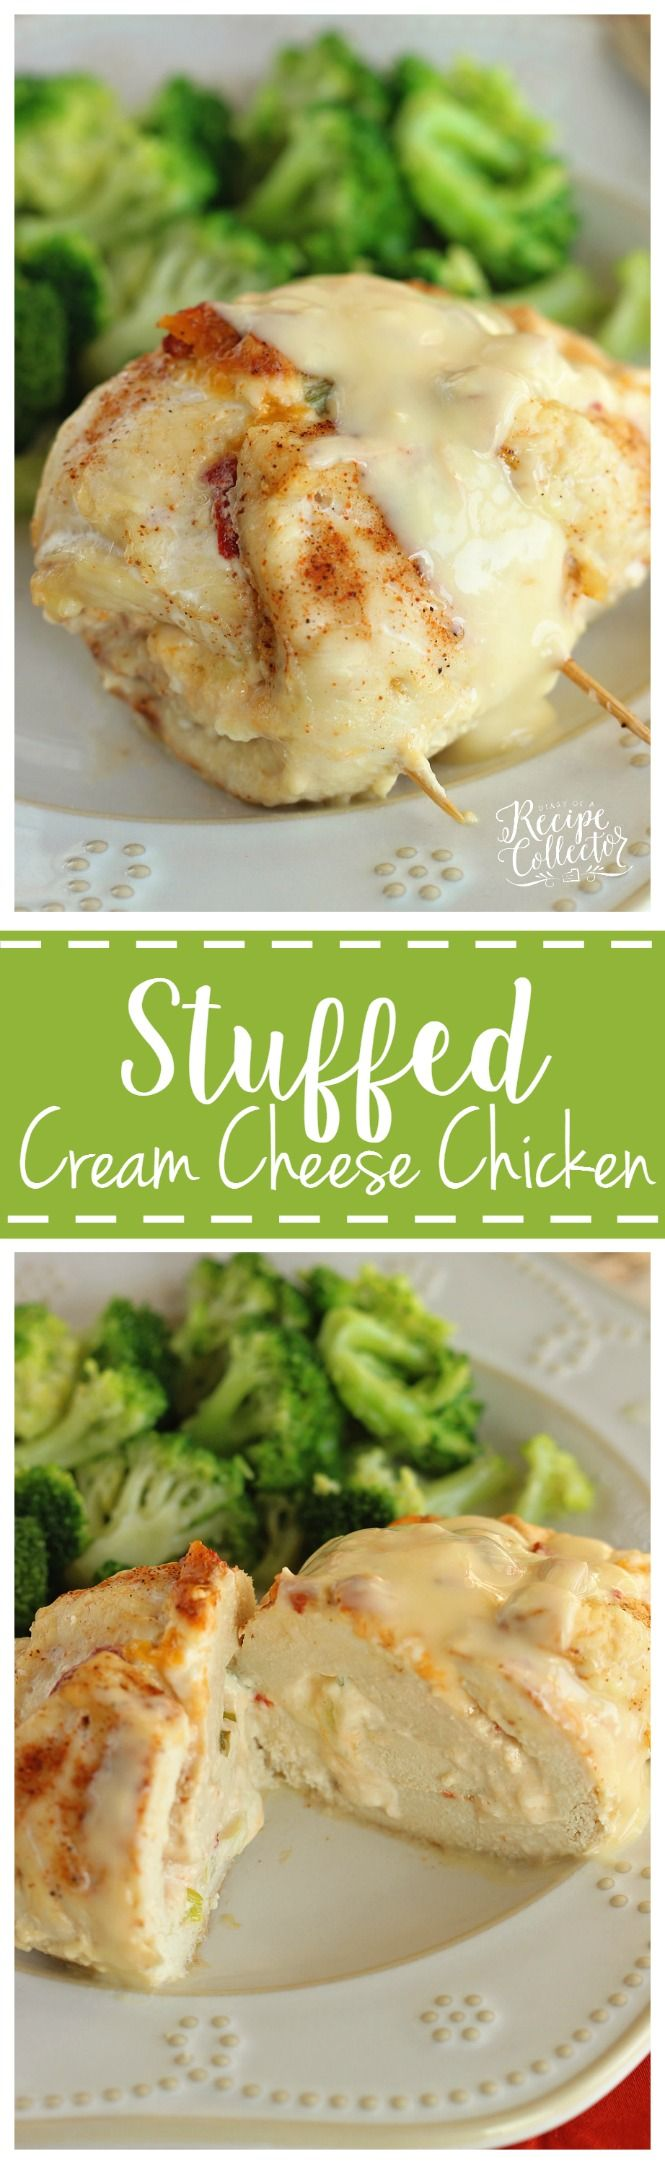 Stuffed Cream Cheese Chicken - Chicken breasts filled and rolled up with a delicious cream cheese spread and baked in the oven. They are such a nice change from the usual chicken dinner! (recipes with chicken oven)